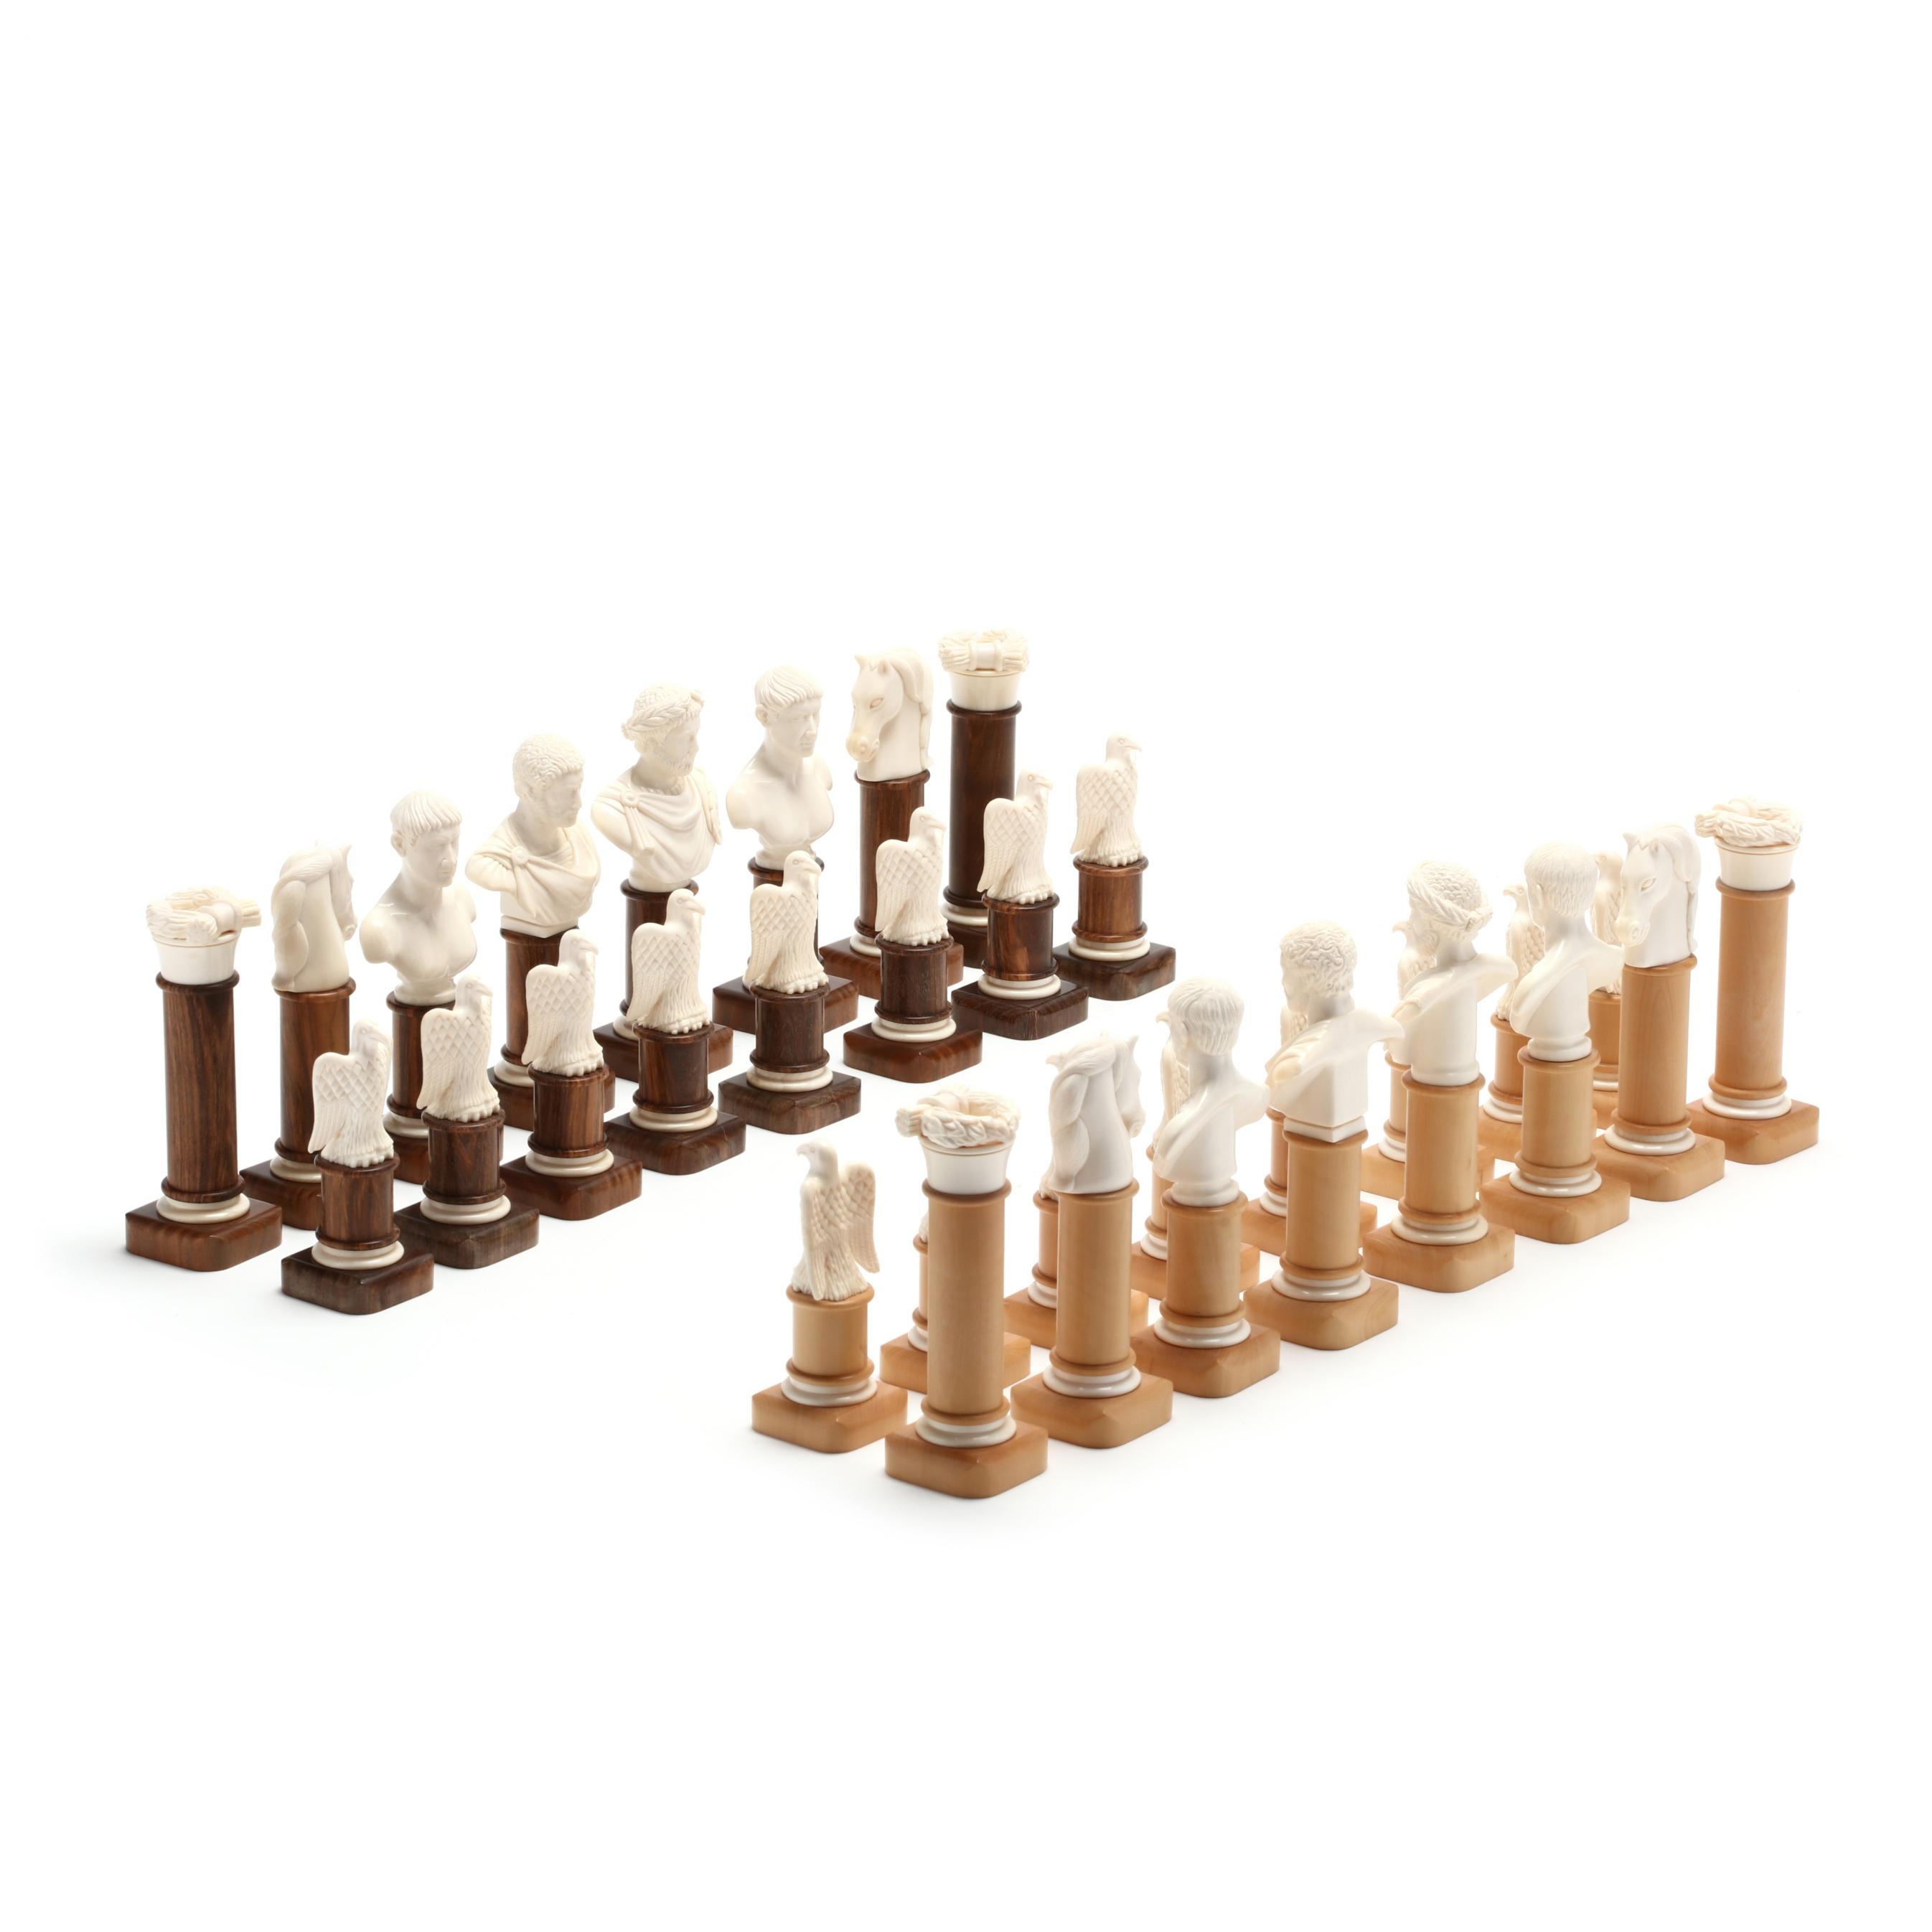 oleg-raikis-russia-20th-century-imperial-roman-figural-chess-set-carved-in-mammoth-ivory